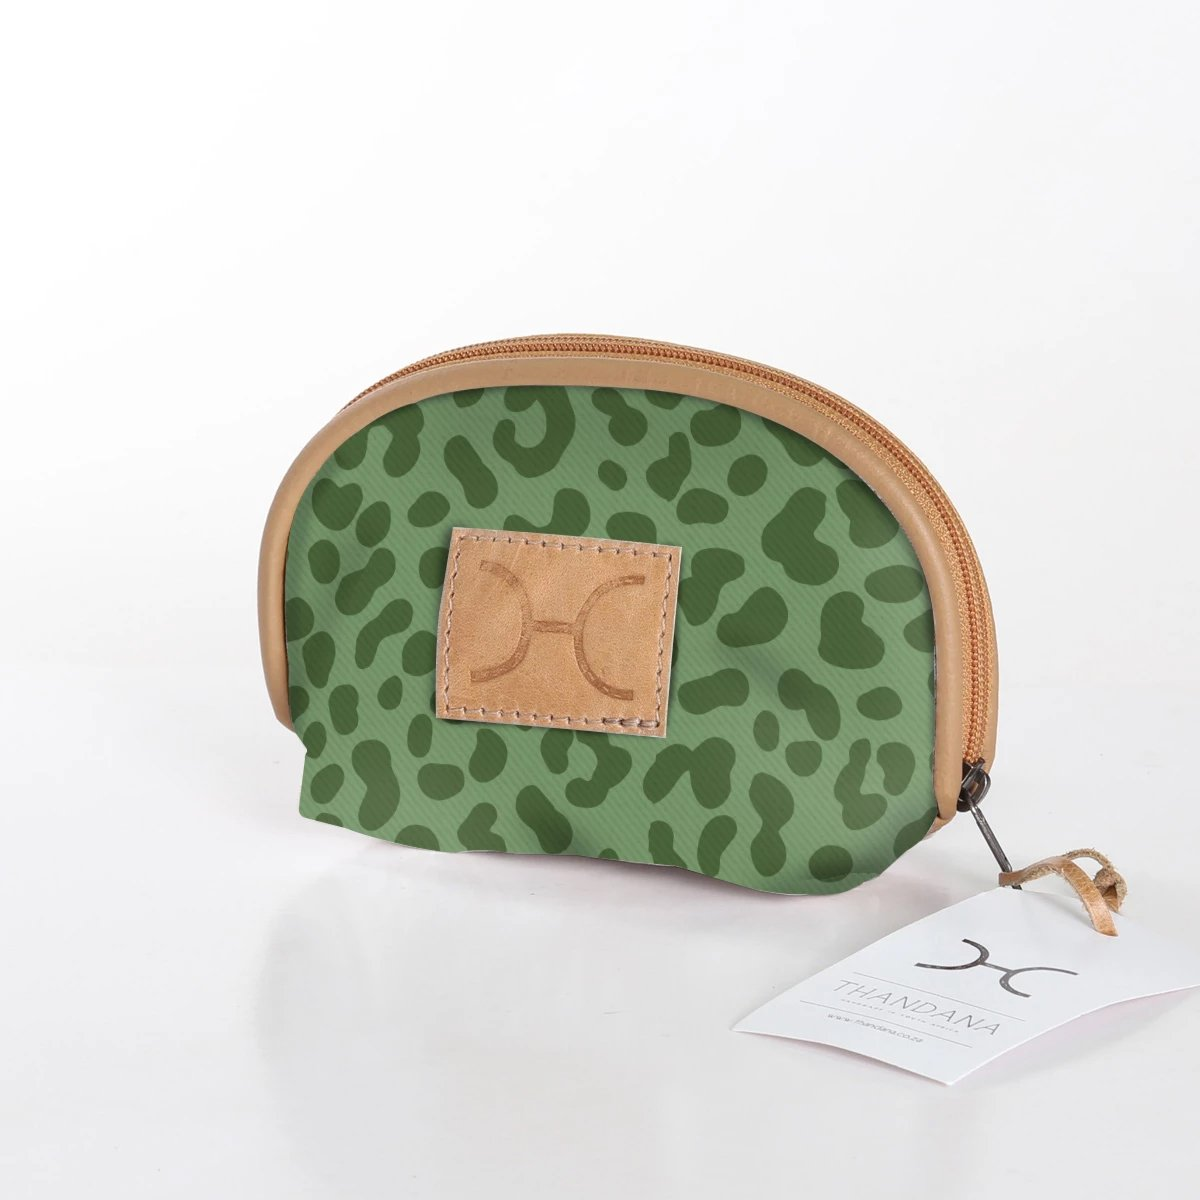 Laminated Fabric Make Up Bag - Olive Cheetah